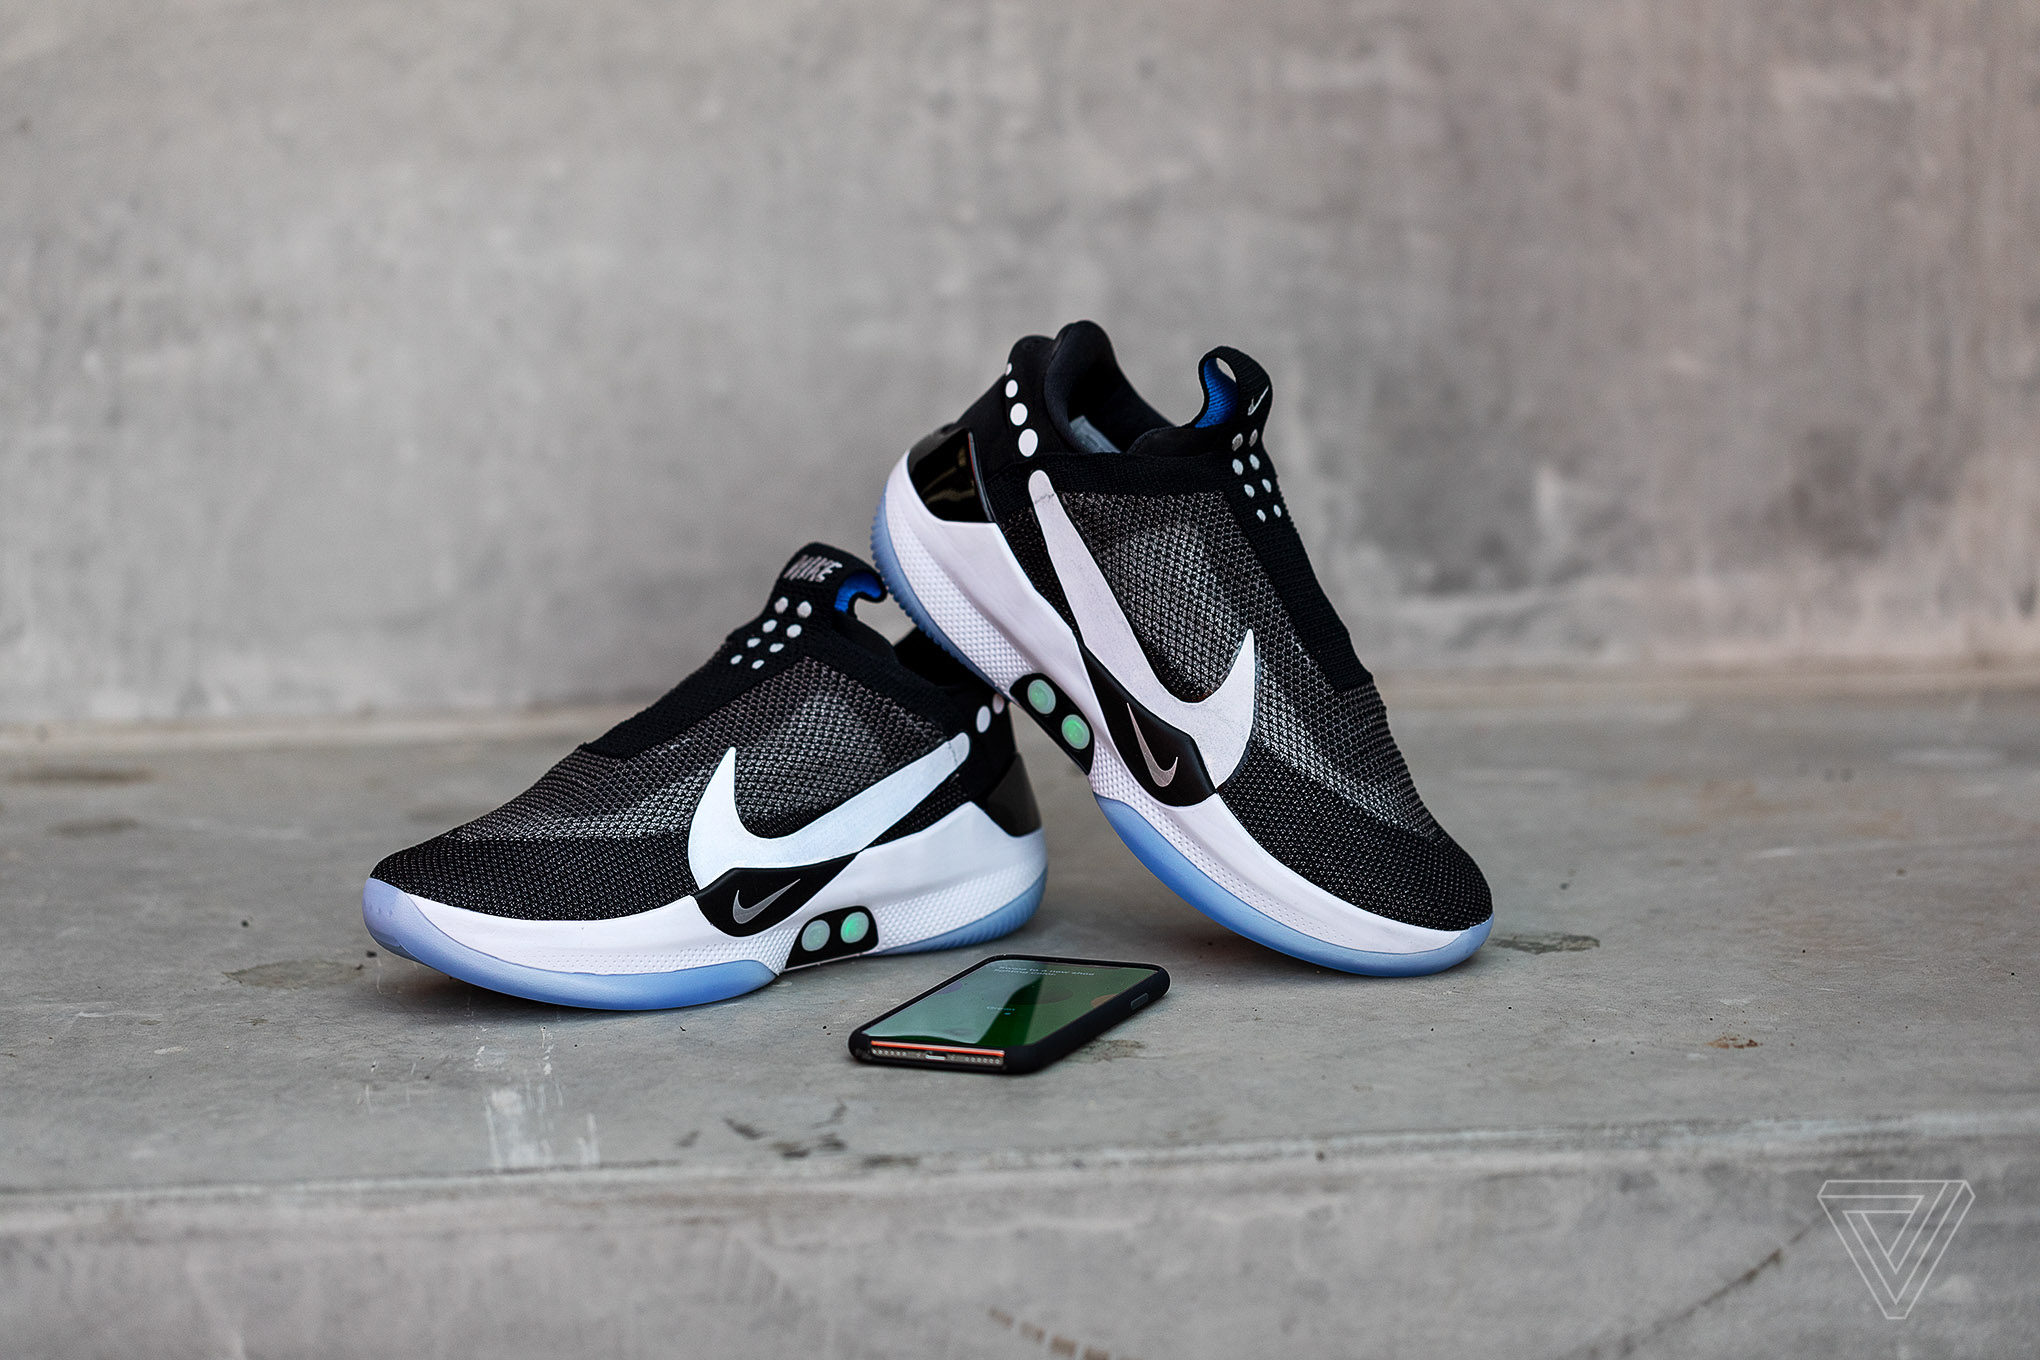 c4c008243 Nike s Adapt BB self-lacing sneakers let you tie your shoes from an ...